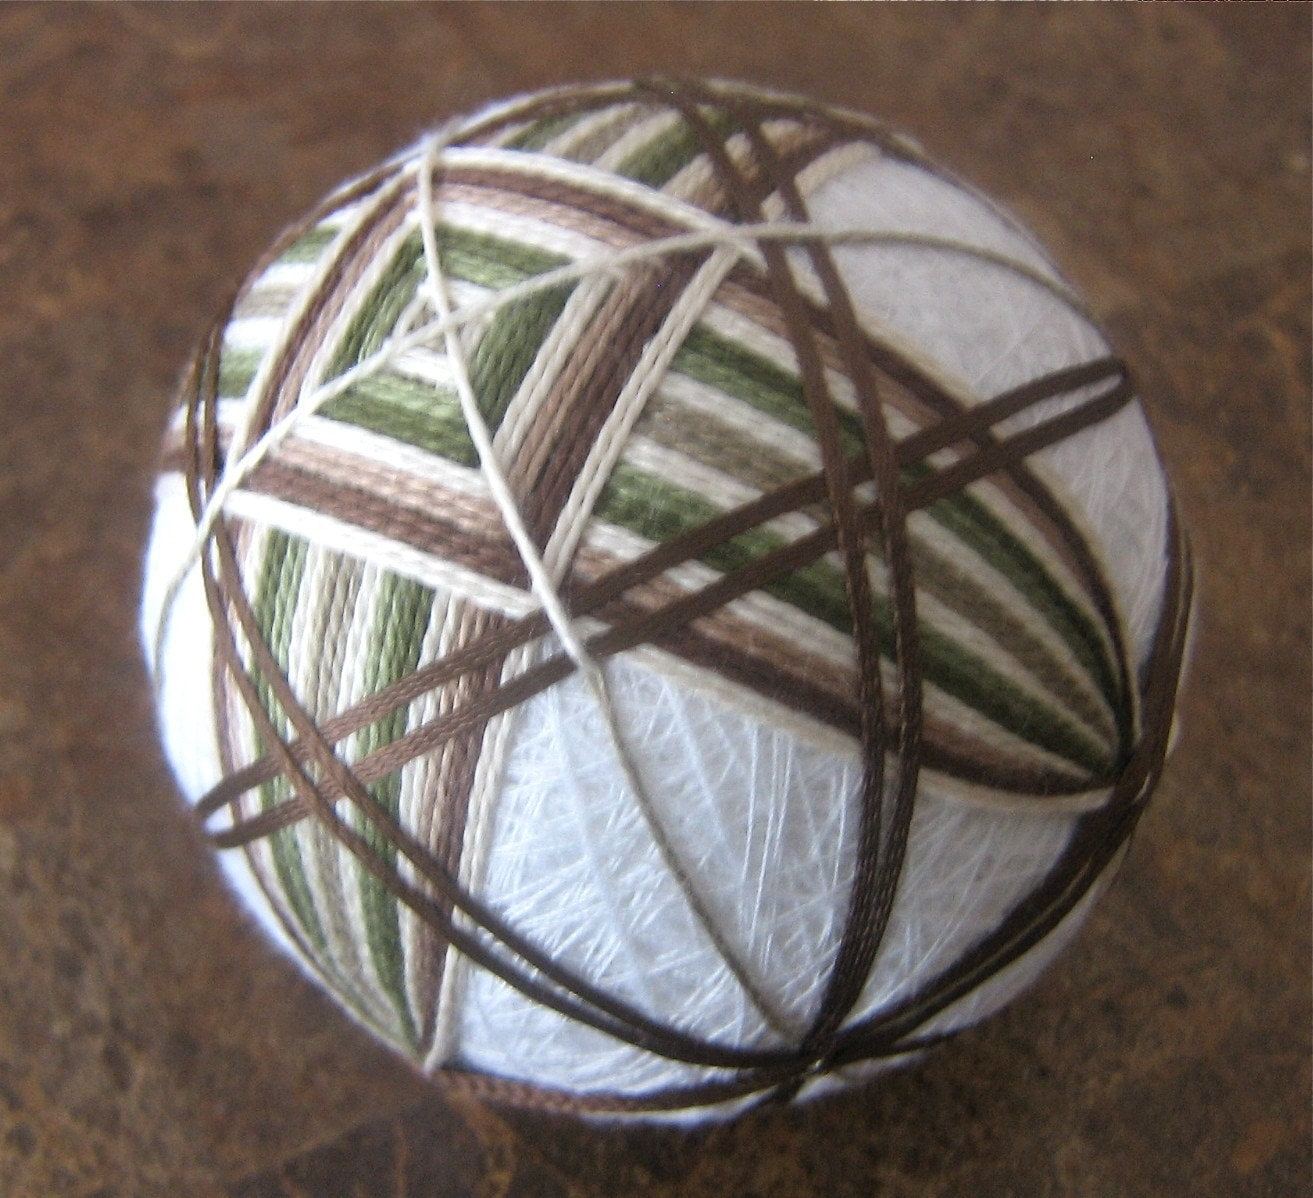 Clearance decorative ball home decor hand by julieandco on Clearance home decor